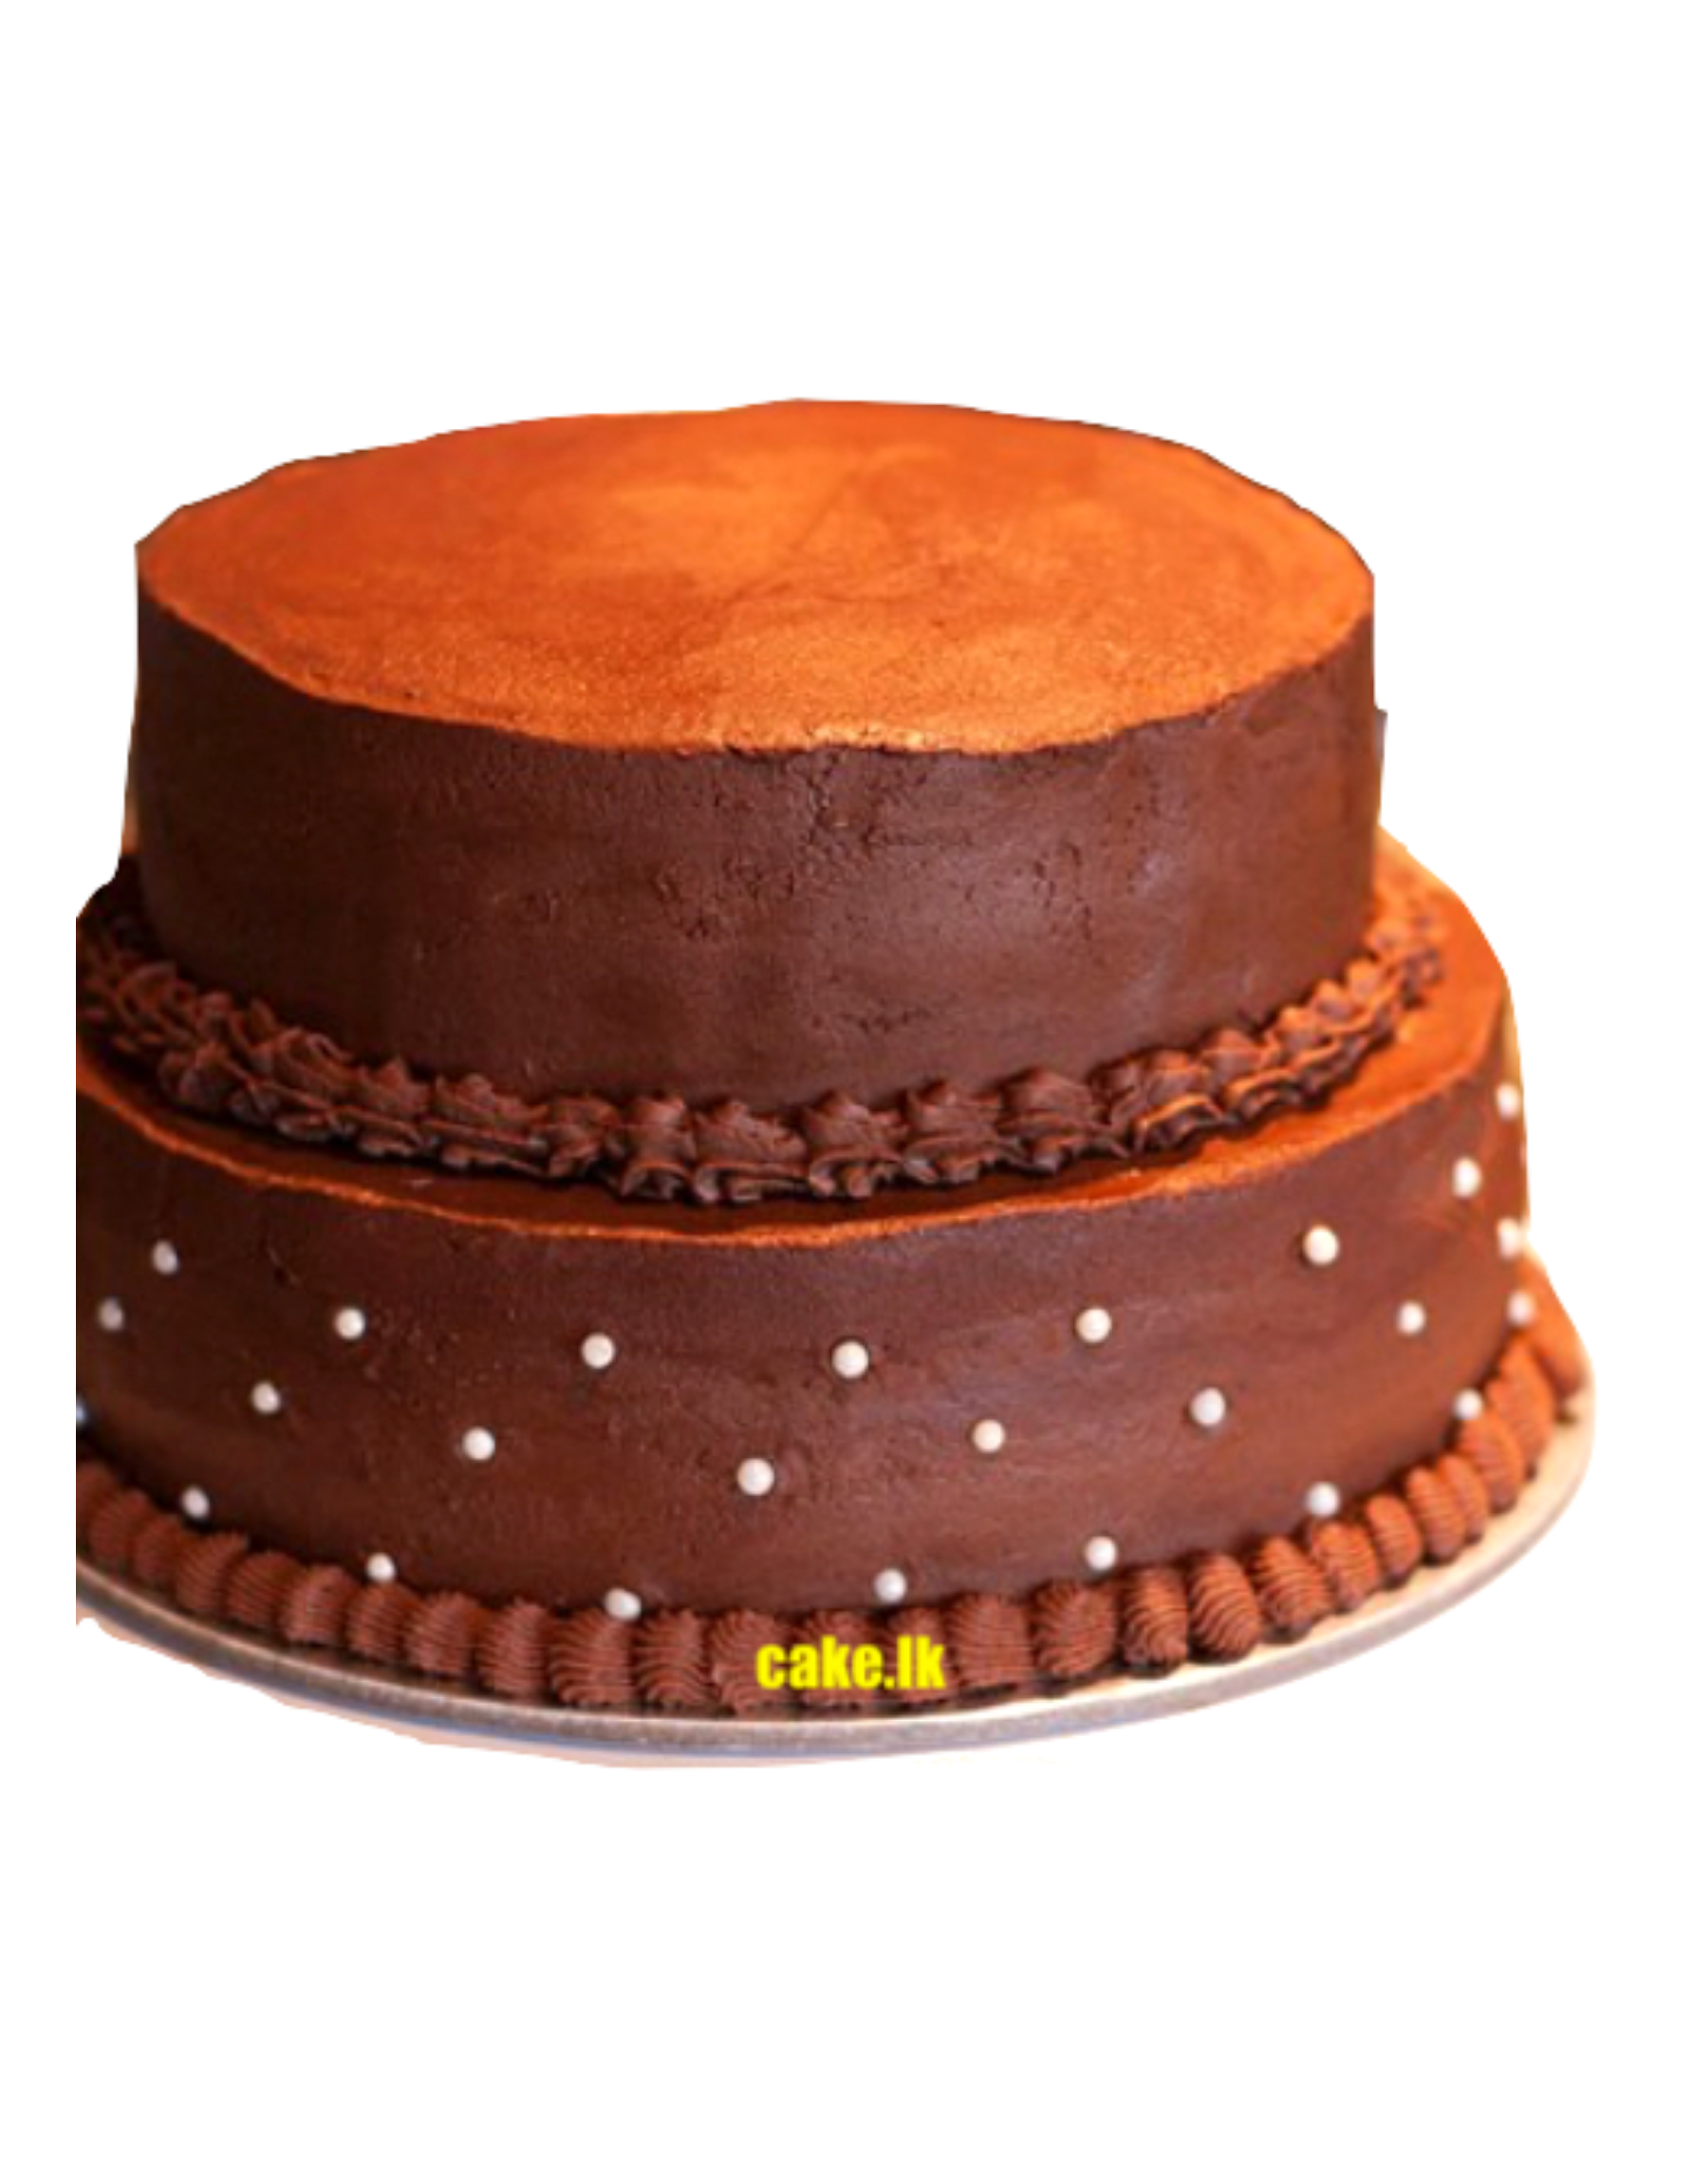 The Ultimate Chocolate Cake 3kg